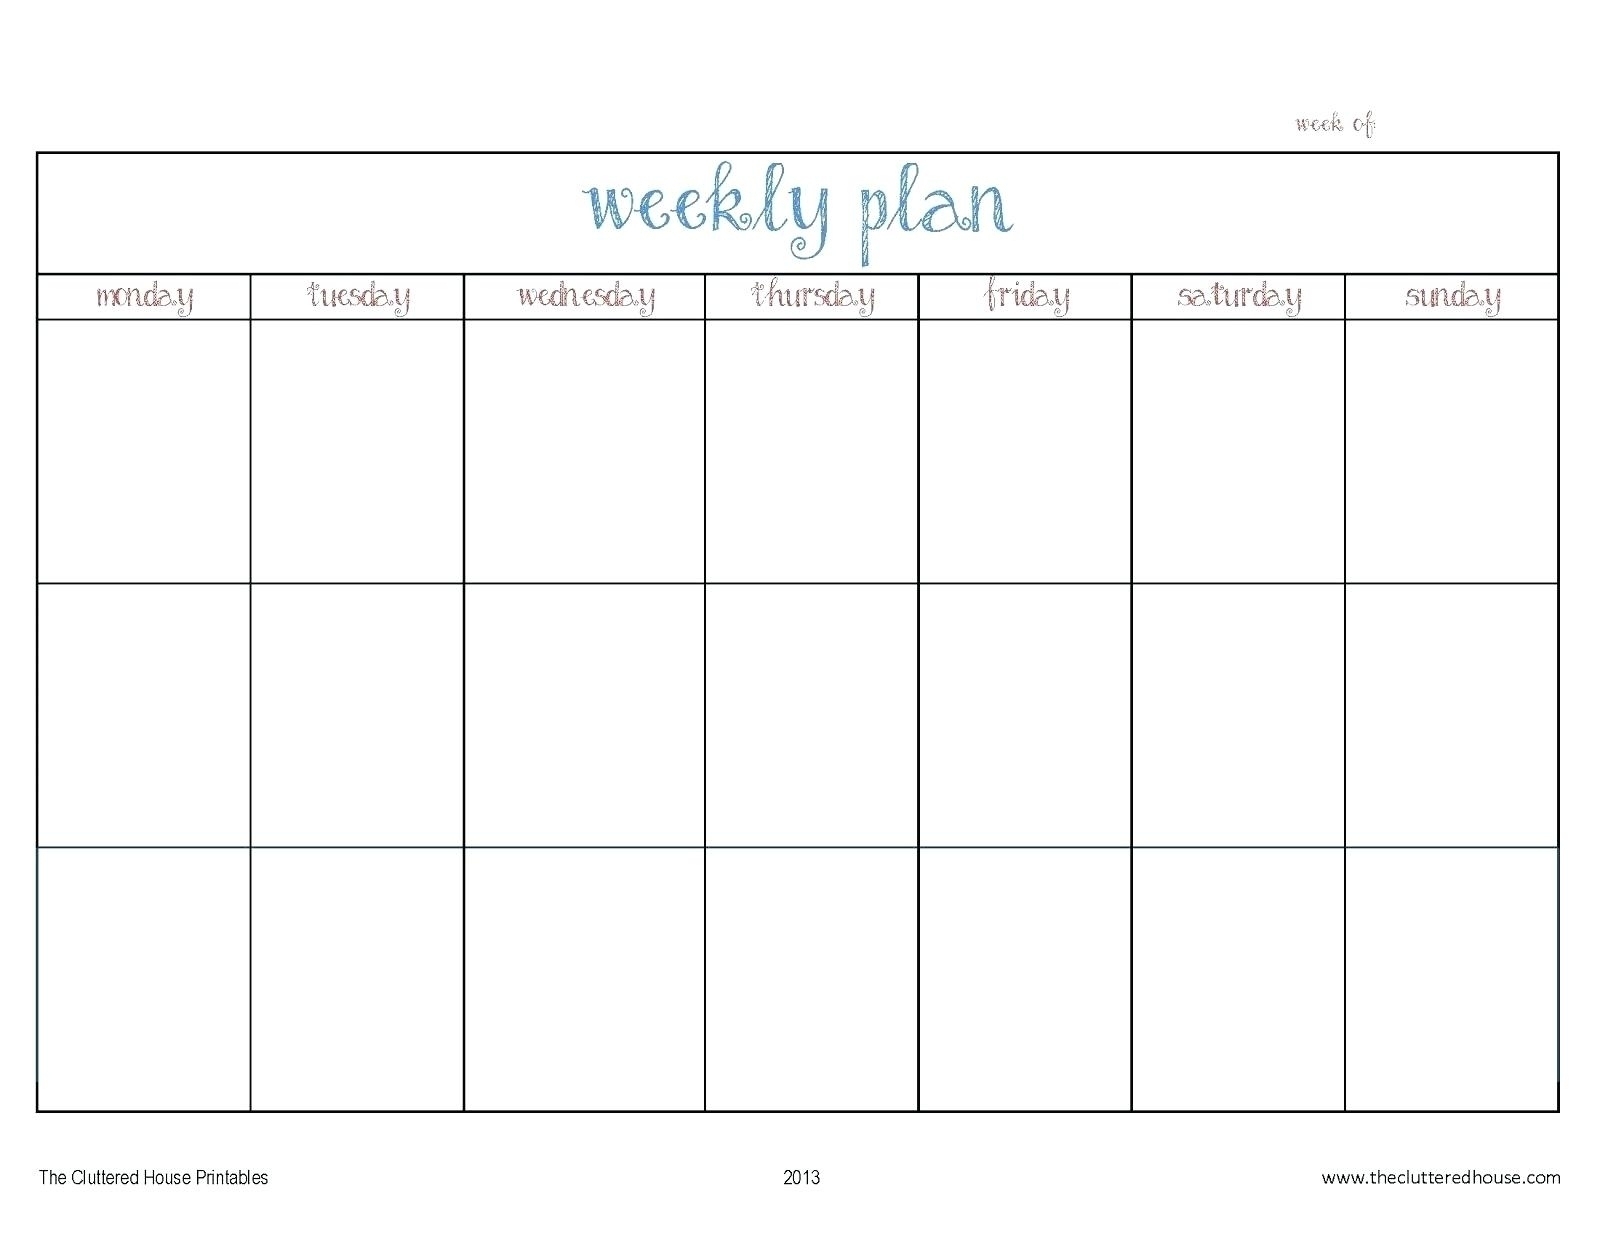 Calendar Template Monday Through Friday • Printable Blank Calendar within Printable Monday Through Friday Calendar Template